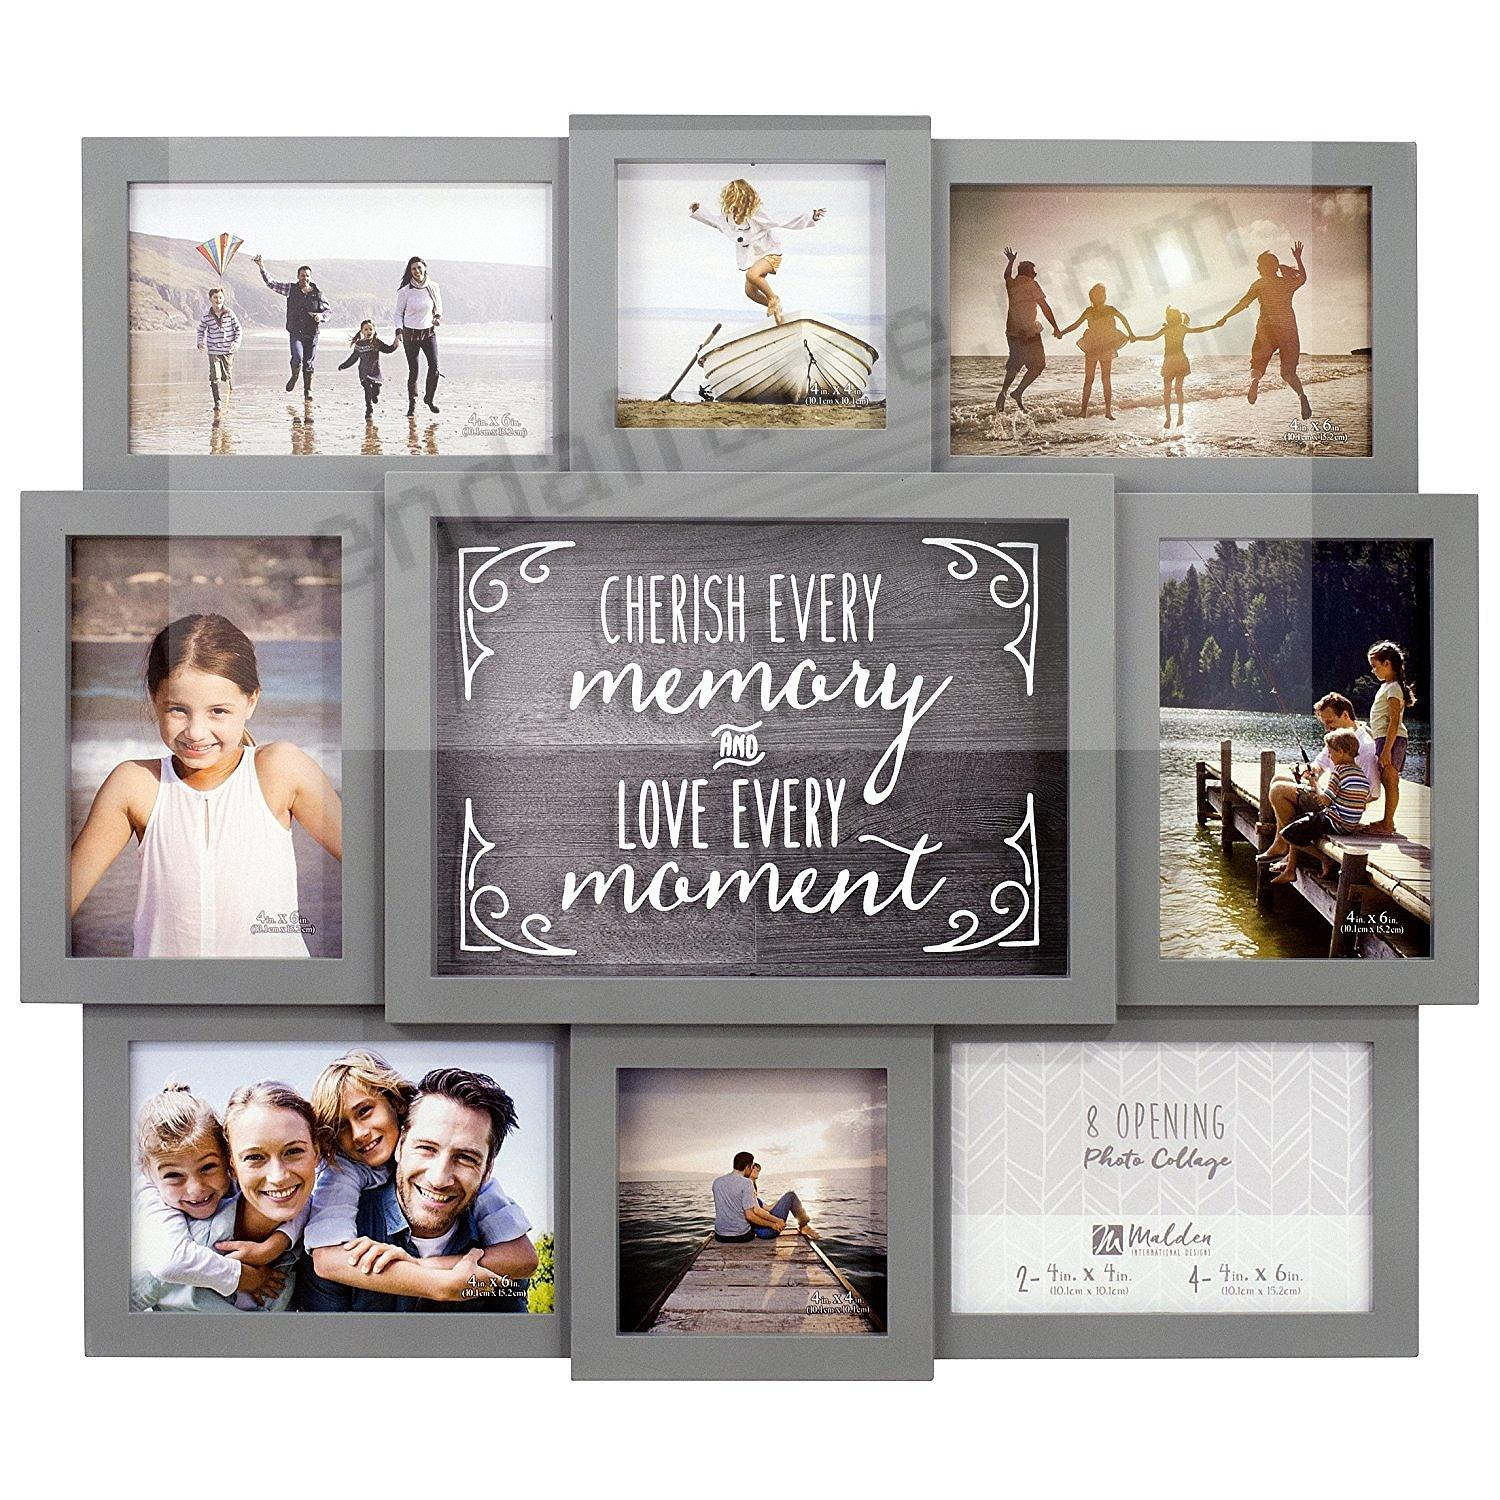 Cherish Every Memory Love Every Moment Collage By Malden Picture Frames Photo Albums Personalized And Engraved Digital Photo Gifts Sendaframe